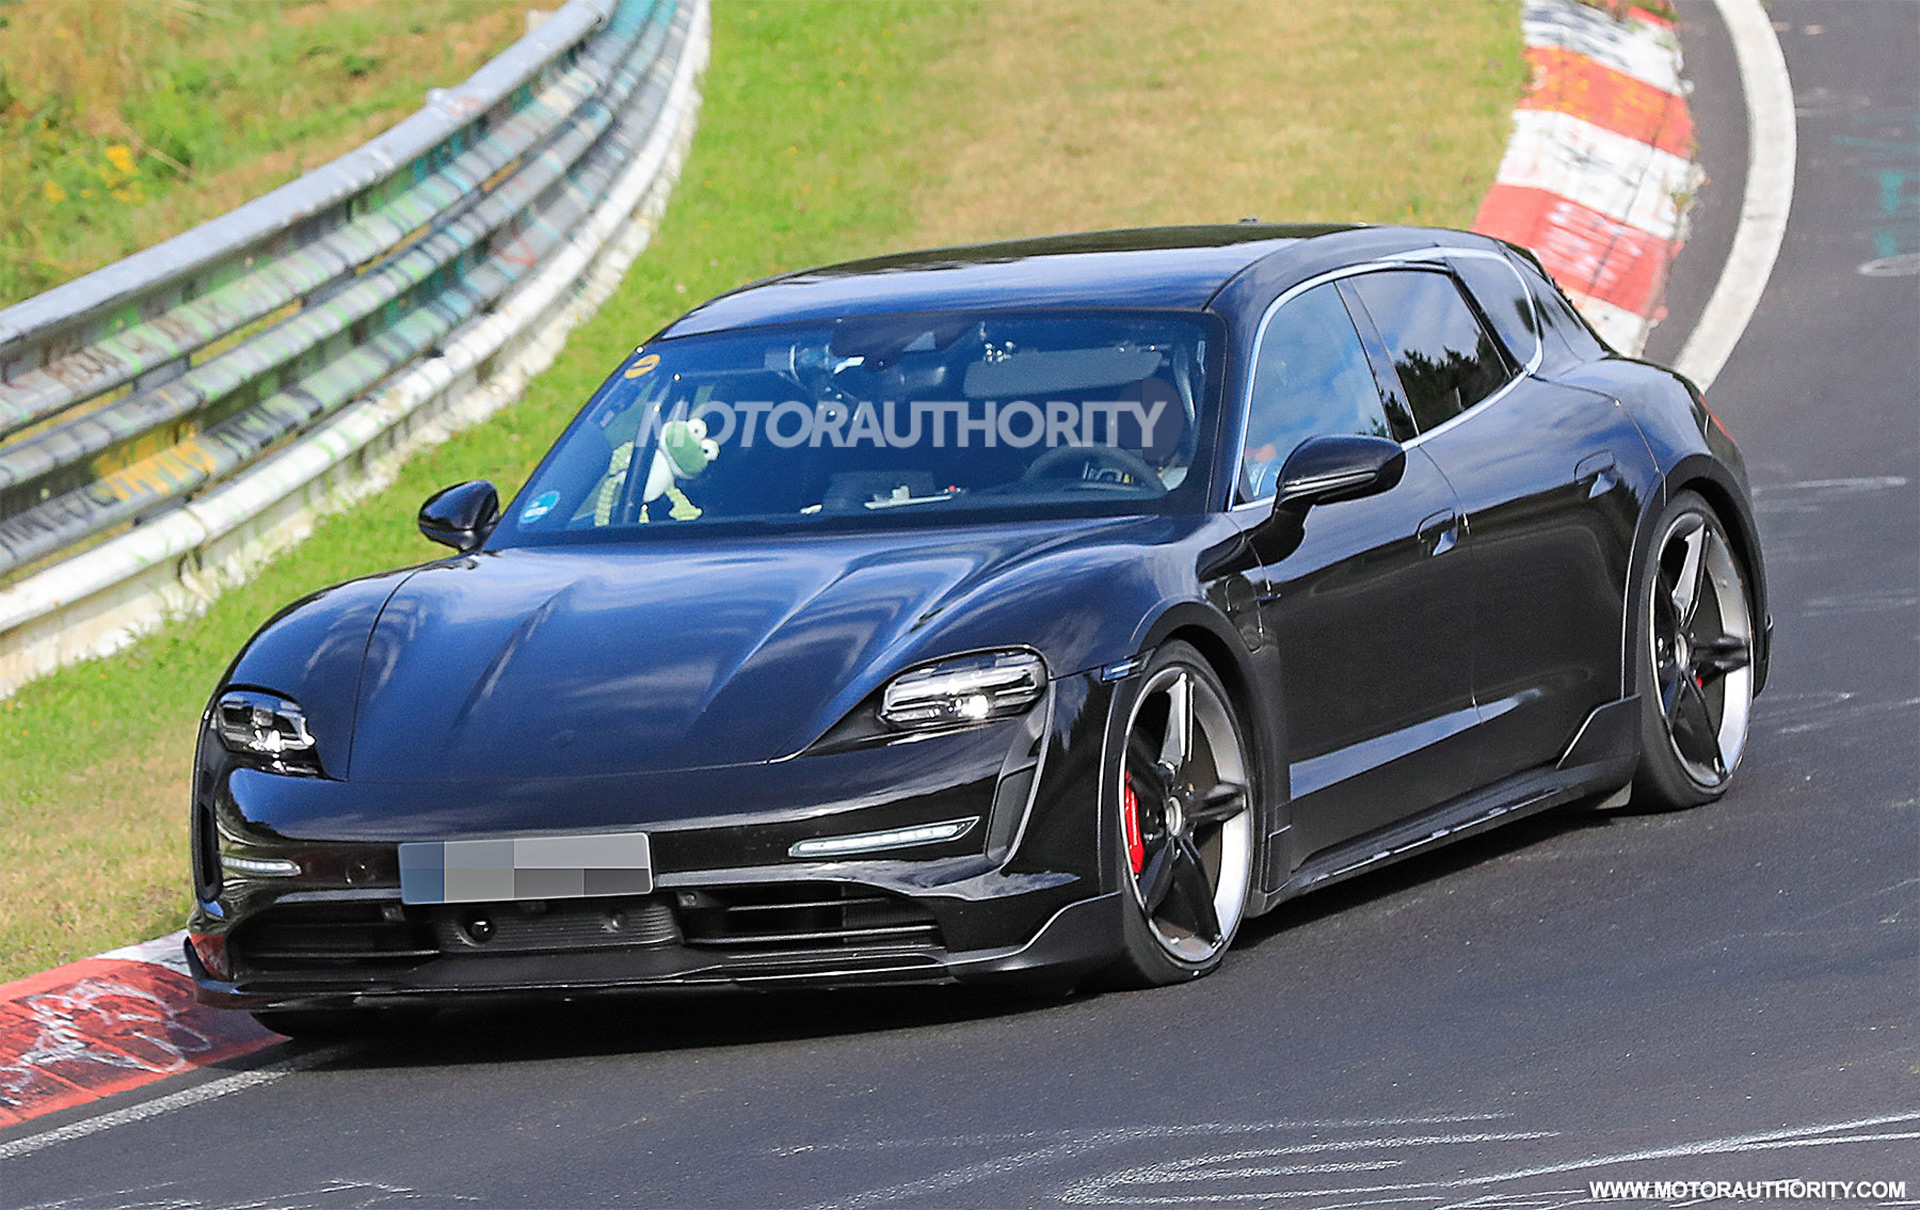 2021 Porsche Taycan Cross Turismo Spy Shots Electric Wagon Coming Up Soon Viruscars